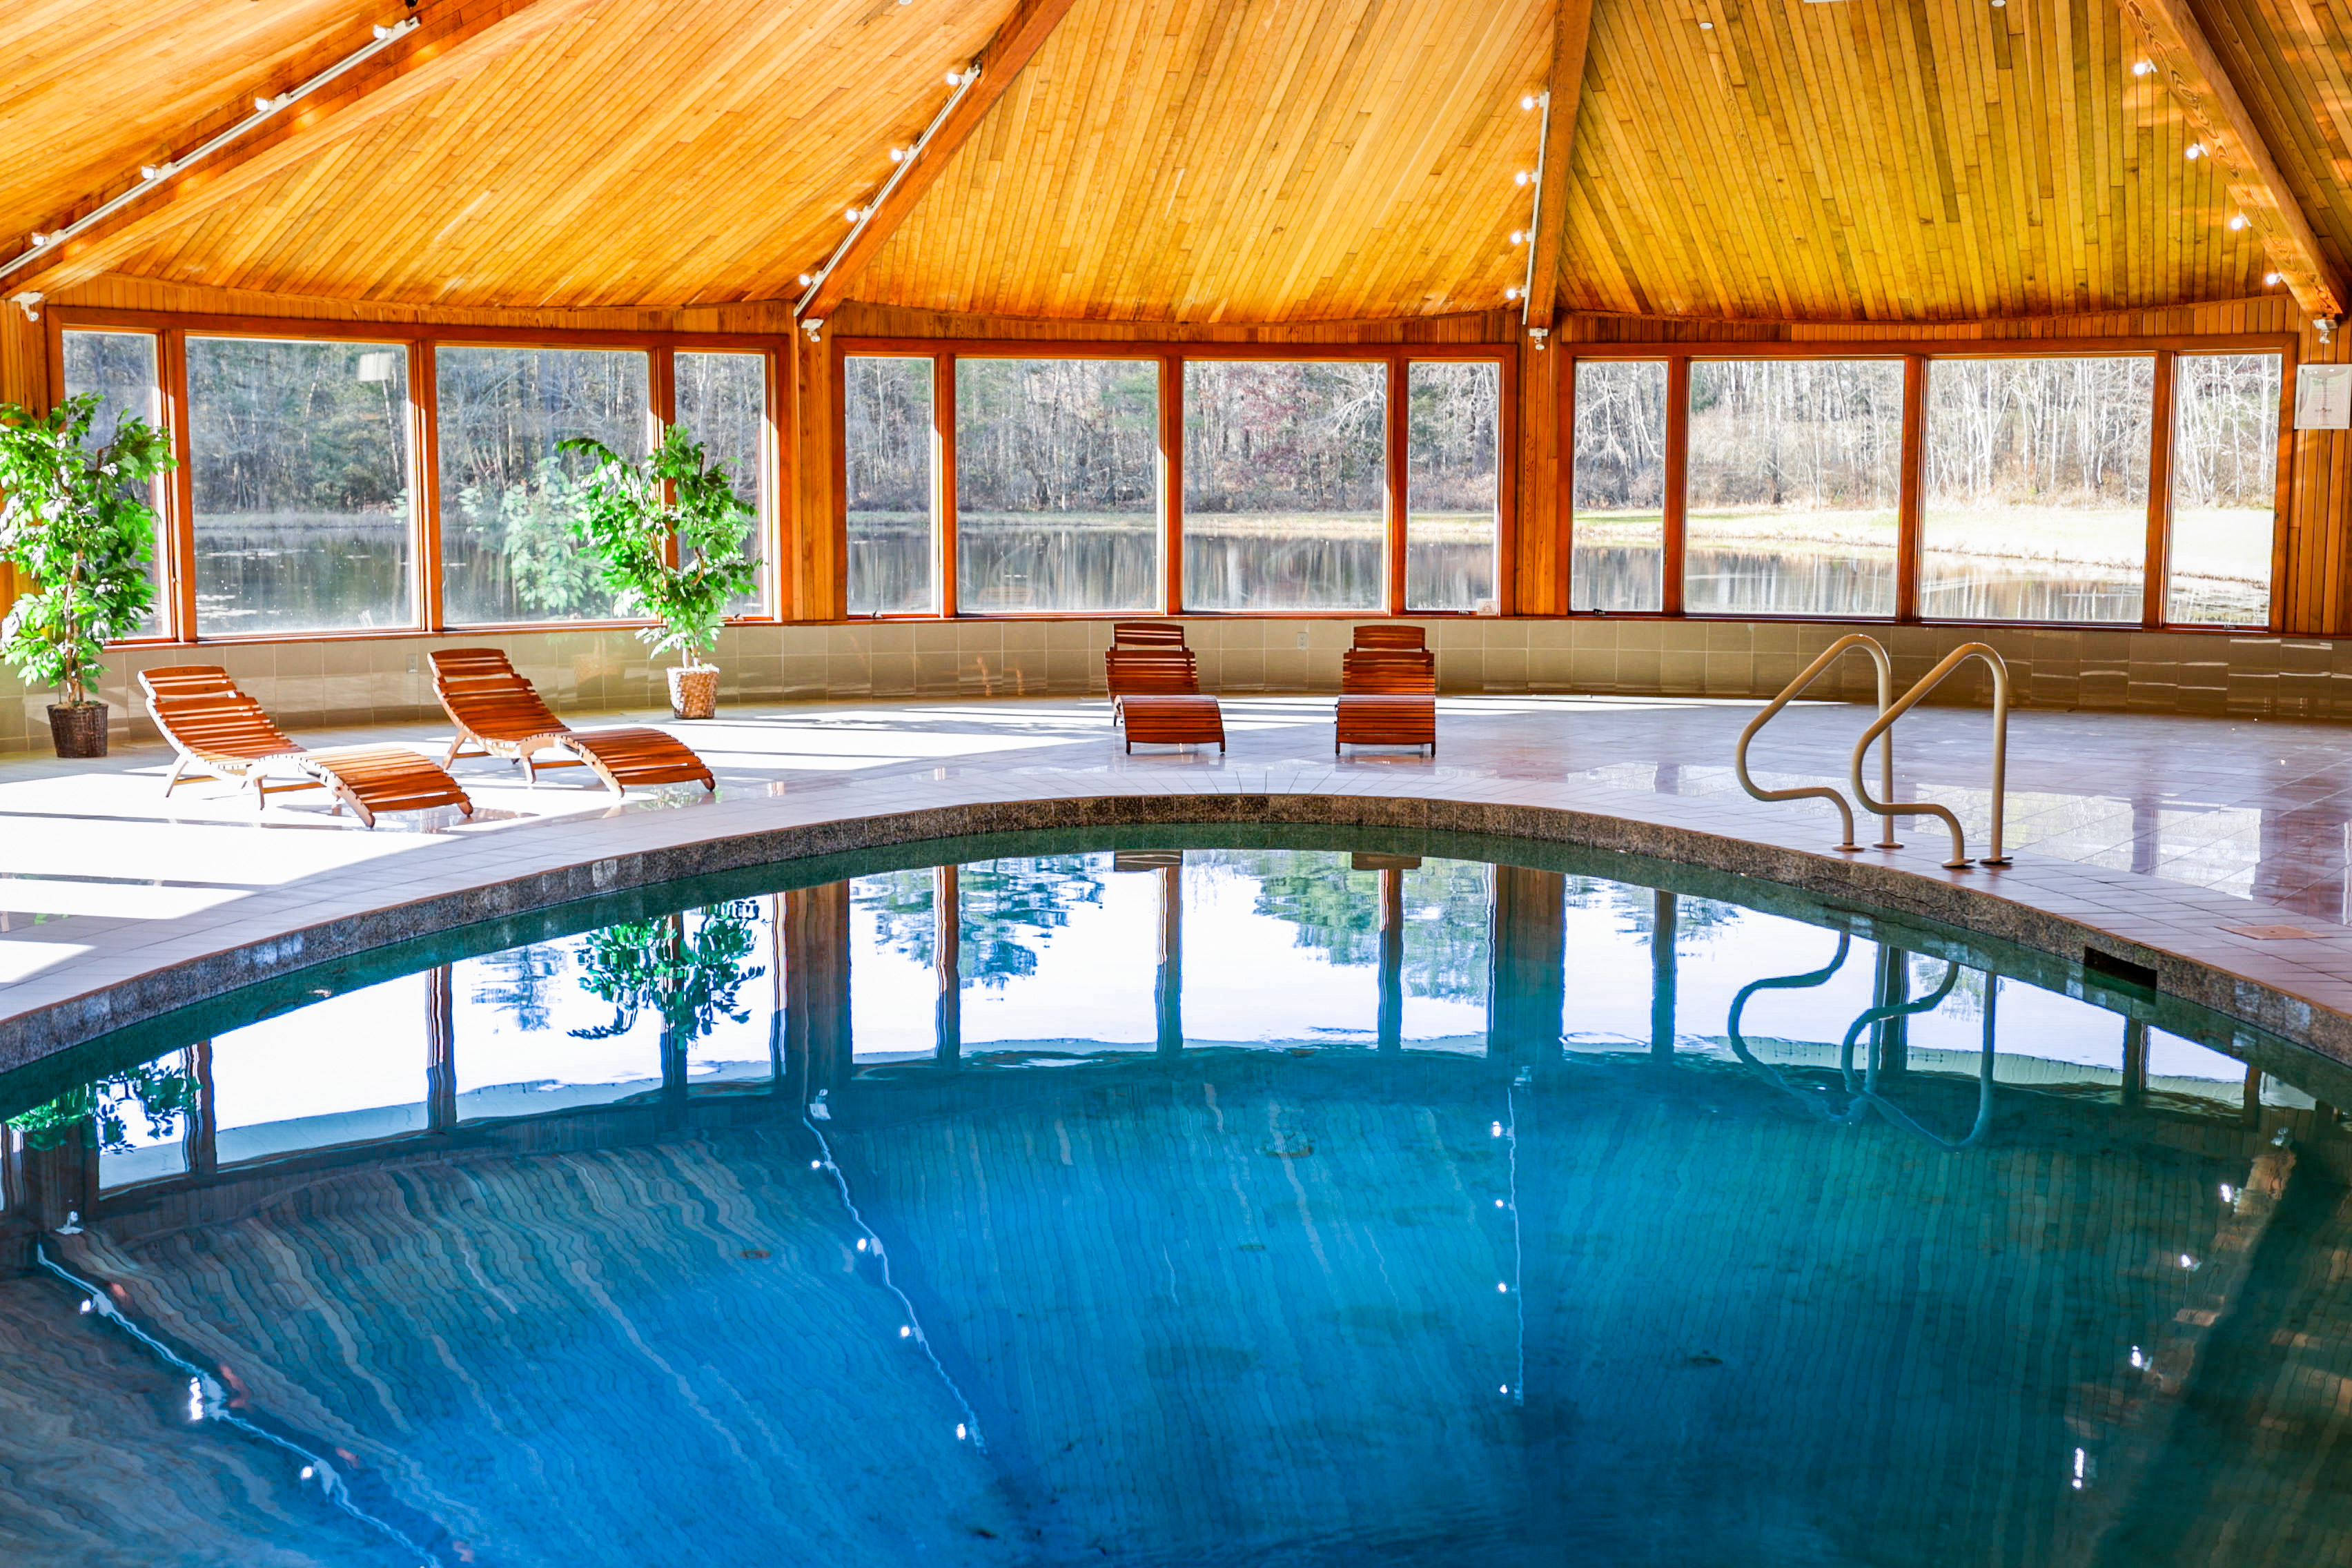 Private Indoor Pool Hot Tub Fishing Ponds 33 Acres Houses For Rent In Narrowsburg New York United States